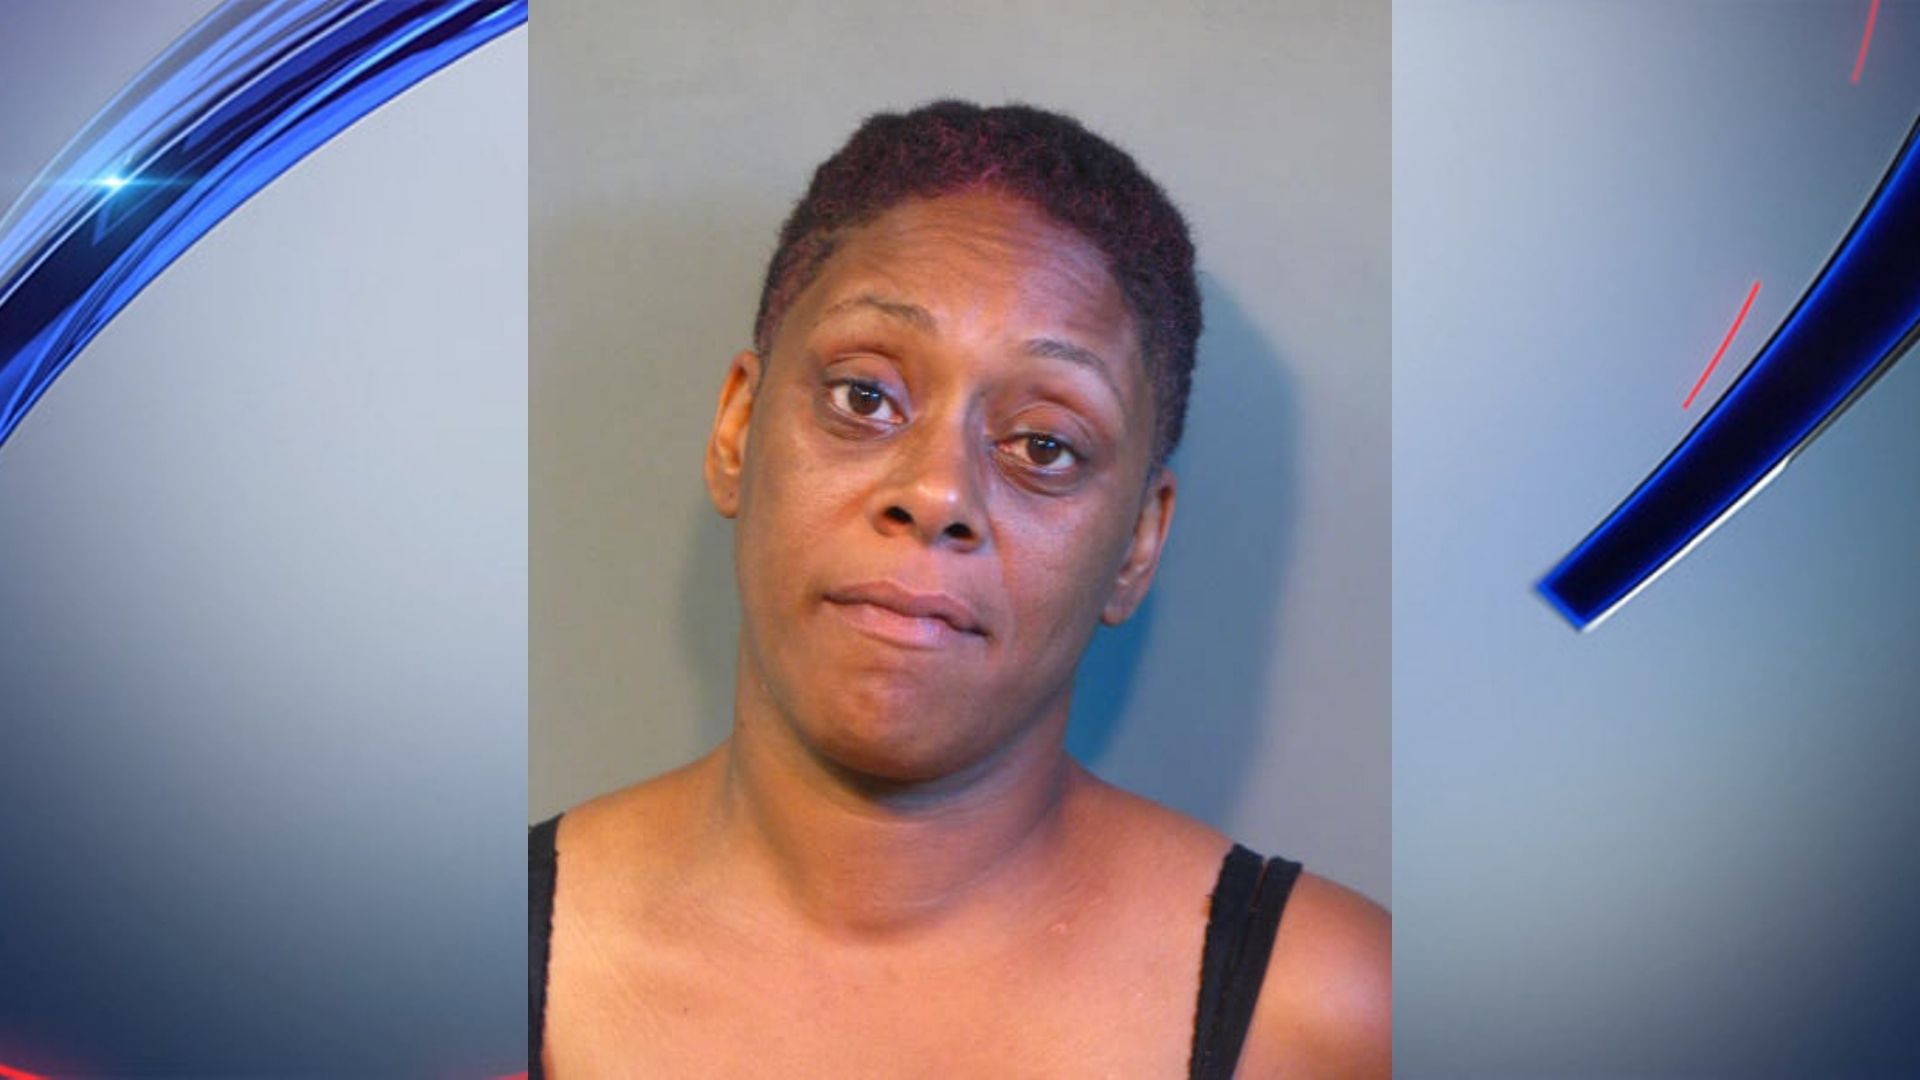 Long Island woman accused of biting officer, resisting arrest